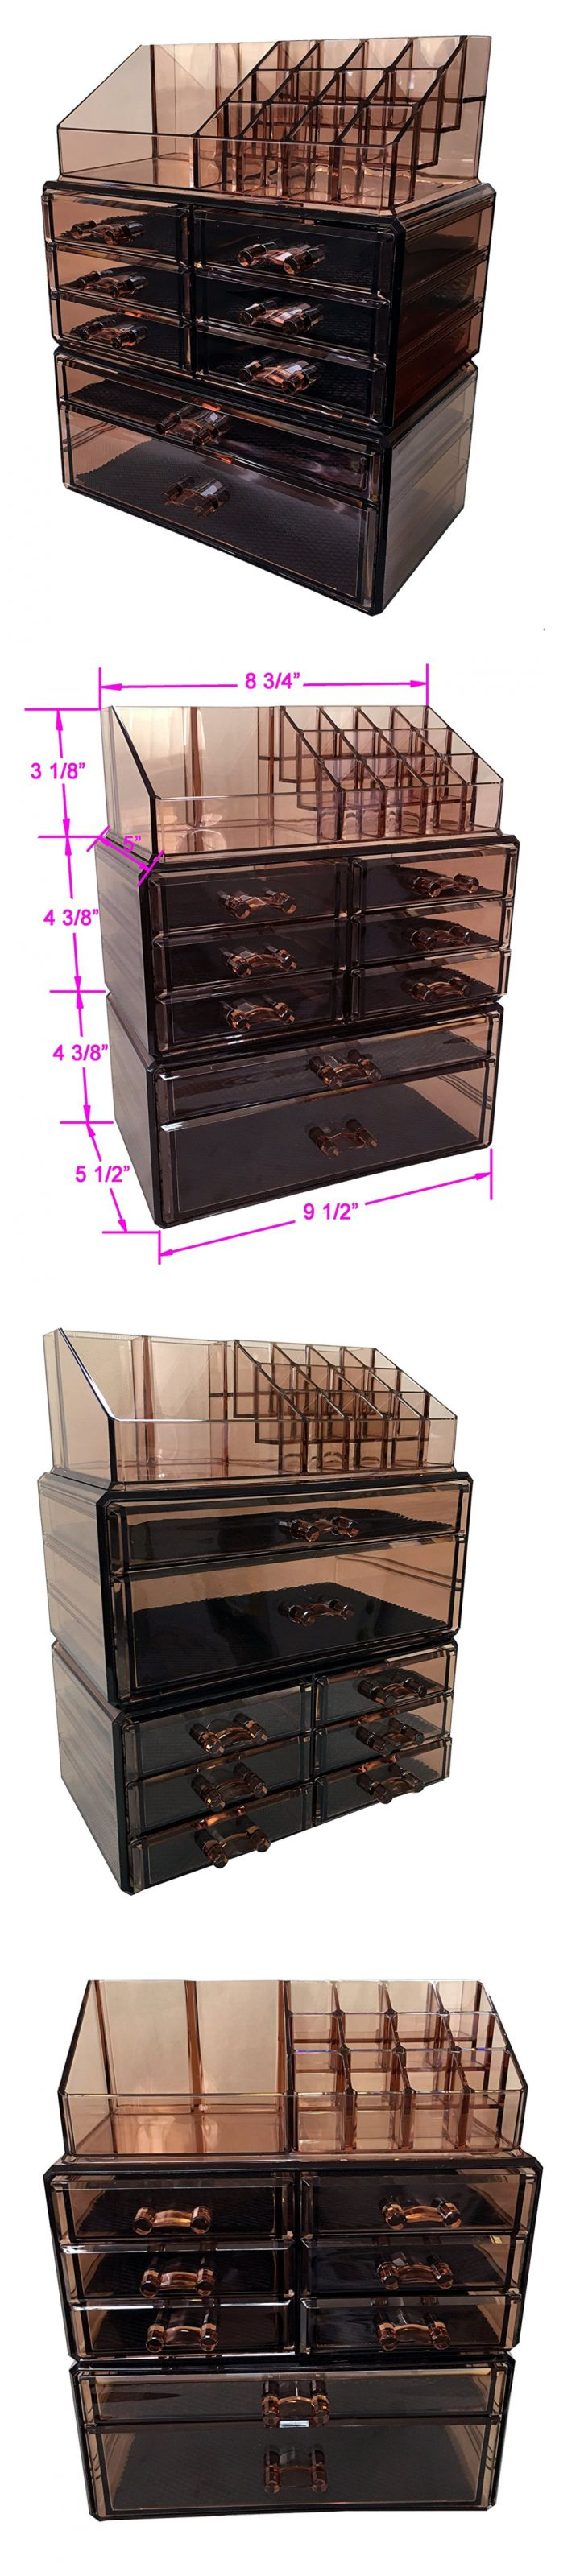 Makeup Bags and Cases: Sodynee Acrylic Makeup Cosmetic Organizer Storage Drawers Display Boxes Case, Th -> BUY IT NOW ONLY: $35.08 on eBay!